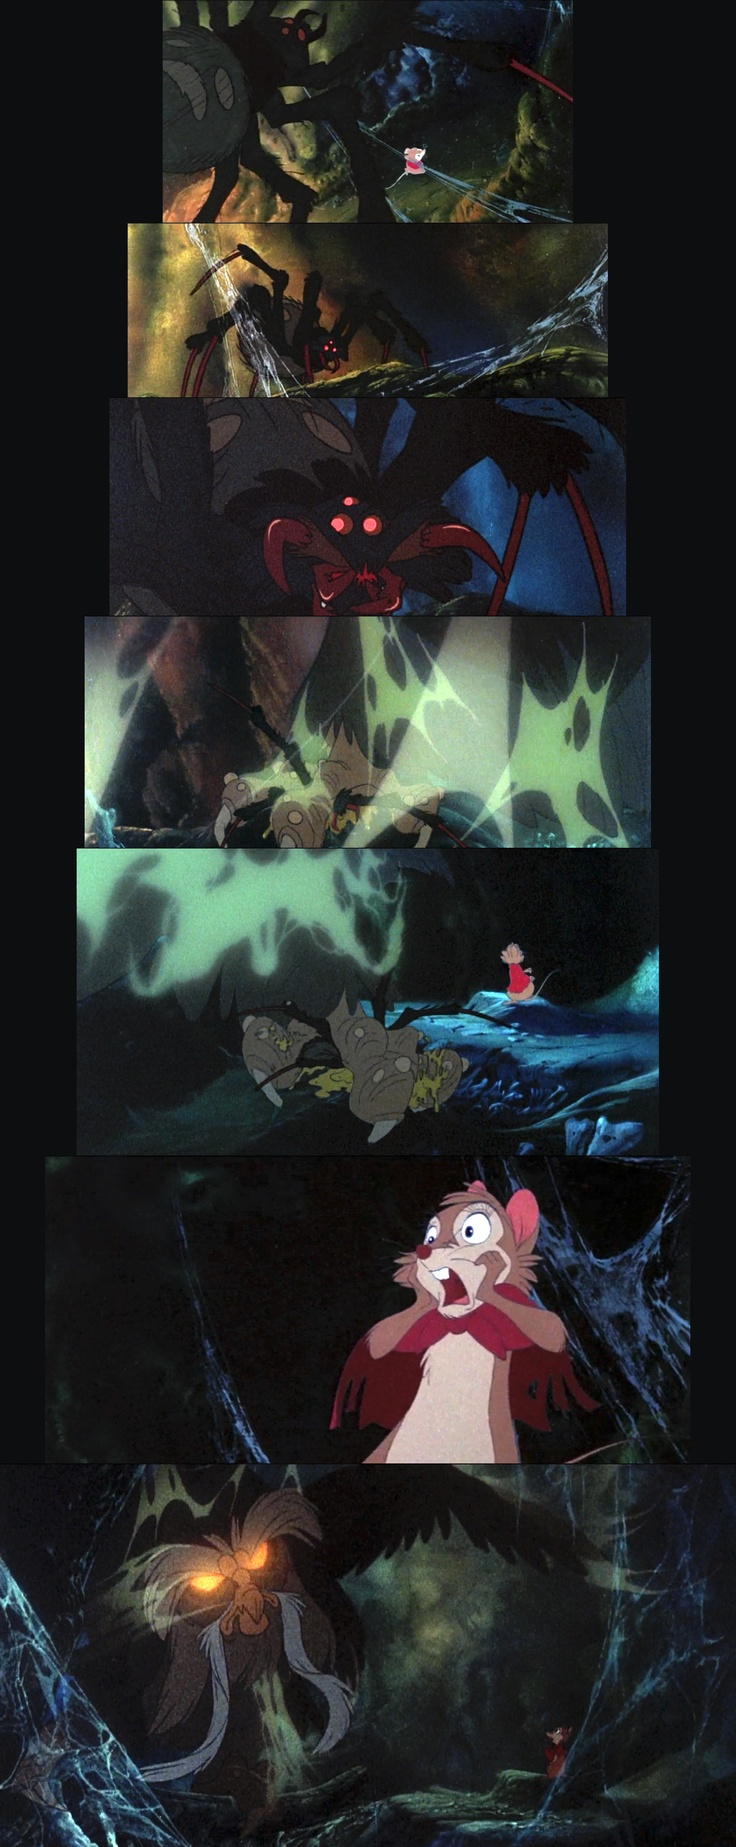 The Secret of NIMH. This scene has so much character. One of Bluth's best.